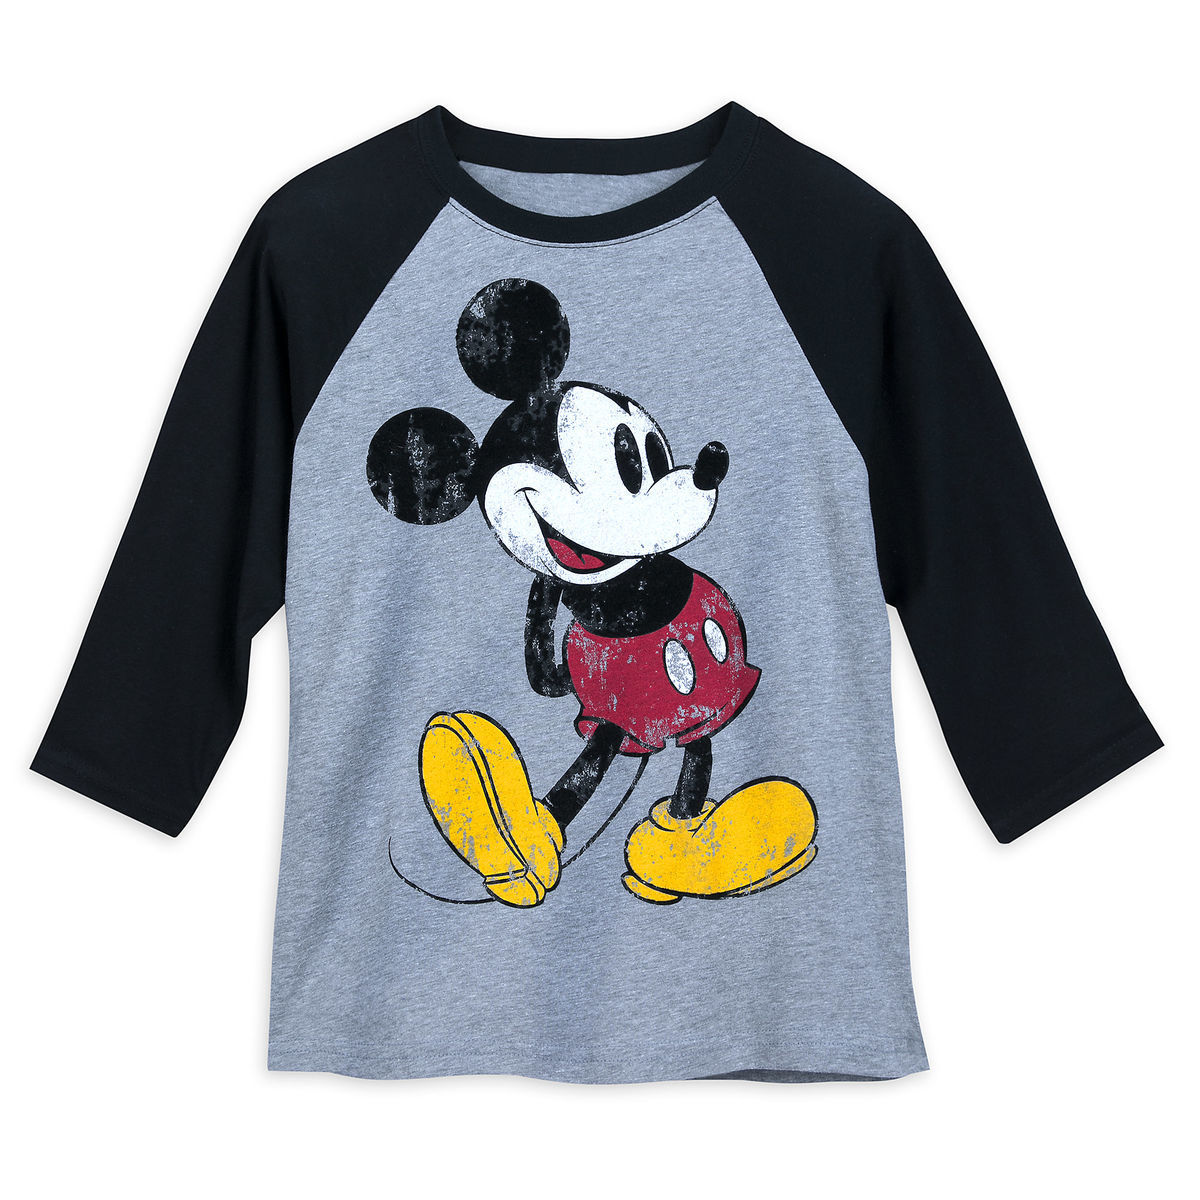 Disney Child's Shirt - Mickey Mouse Raglan